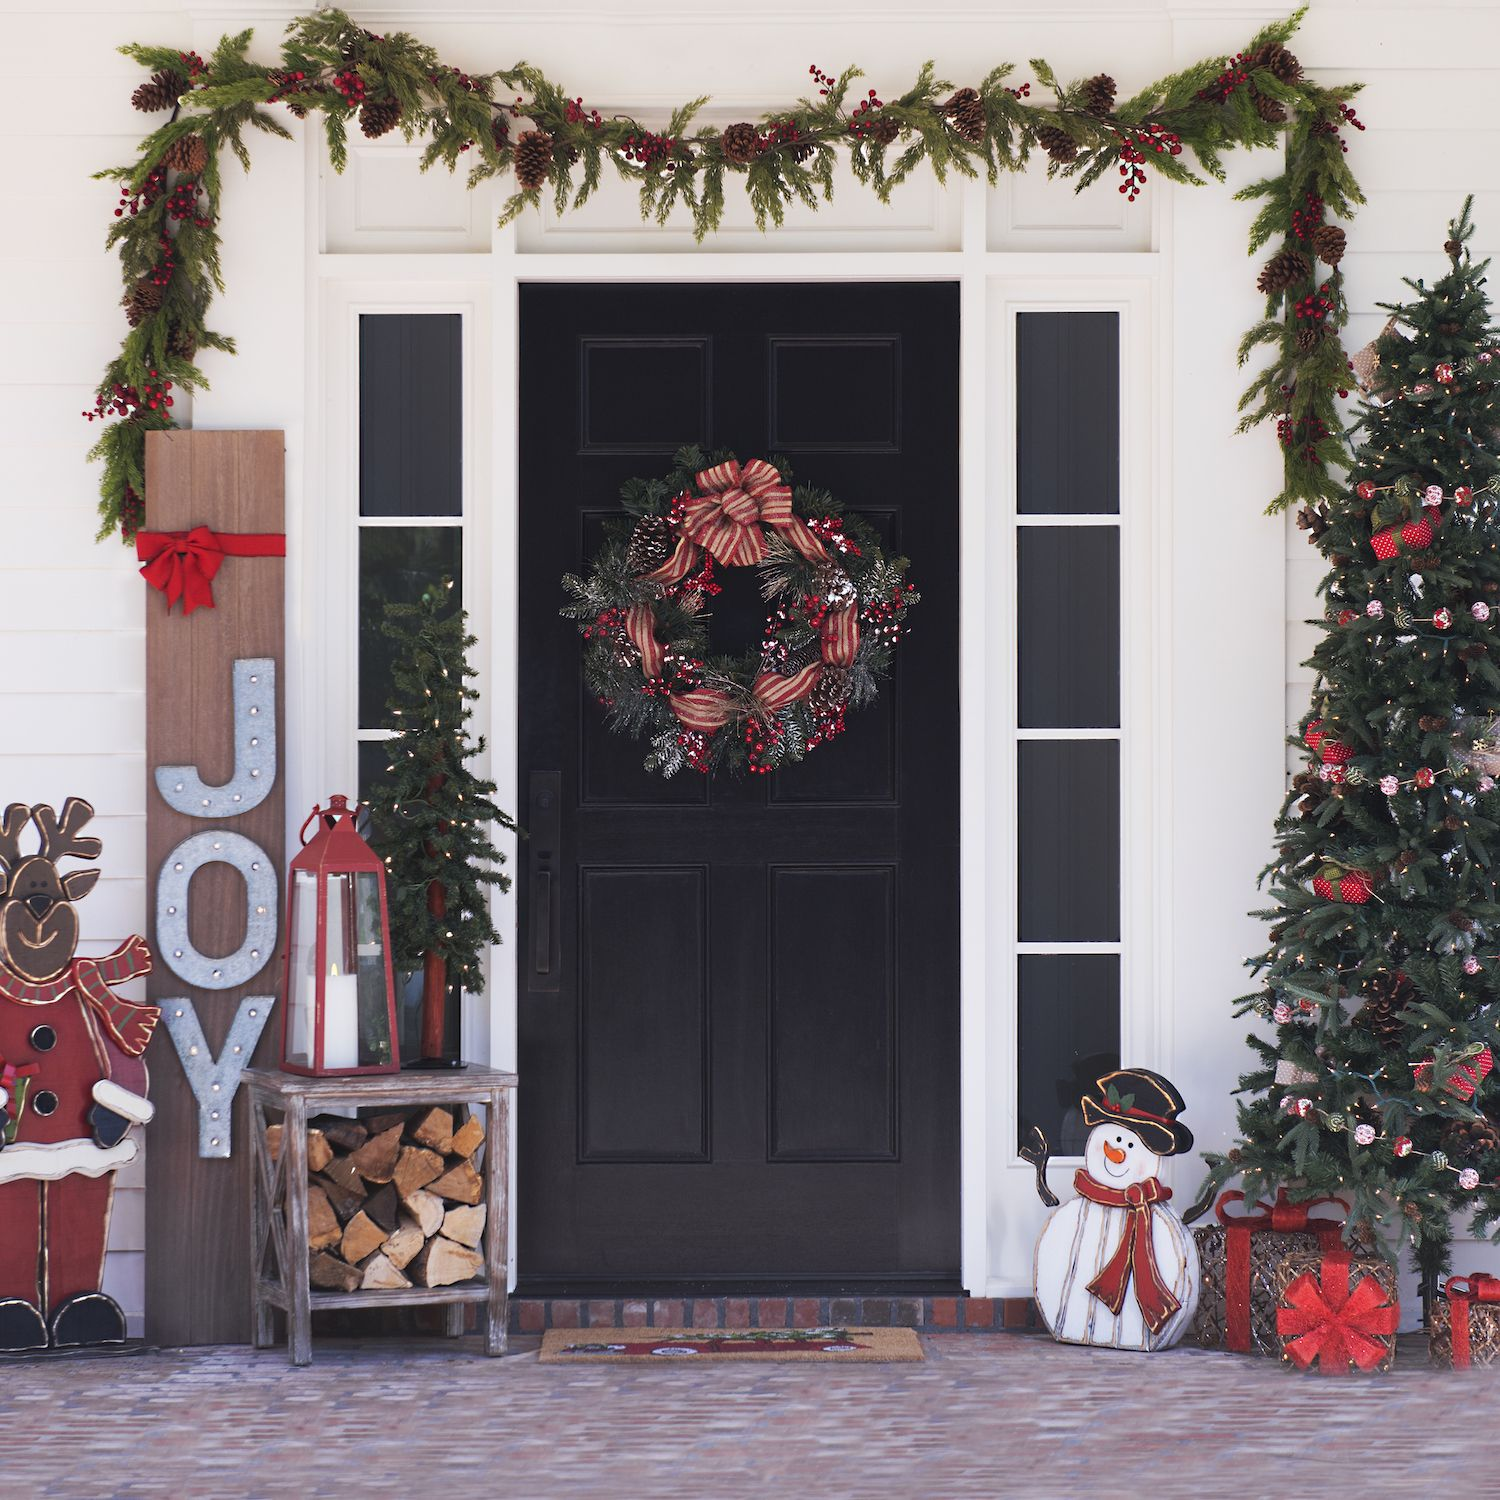 Outside Home Christmas Decorating Ideas: Decorating Your House For Christmas